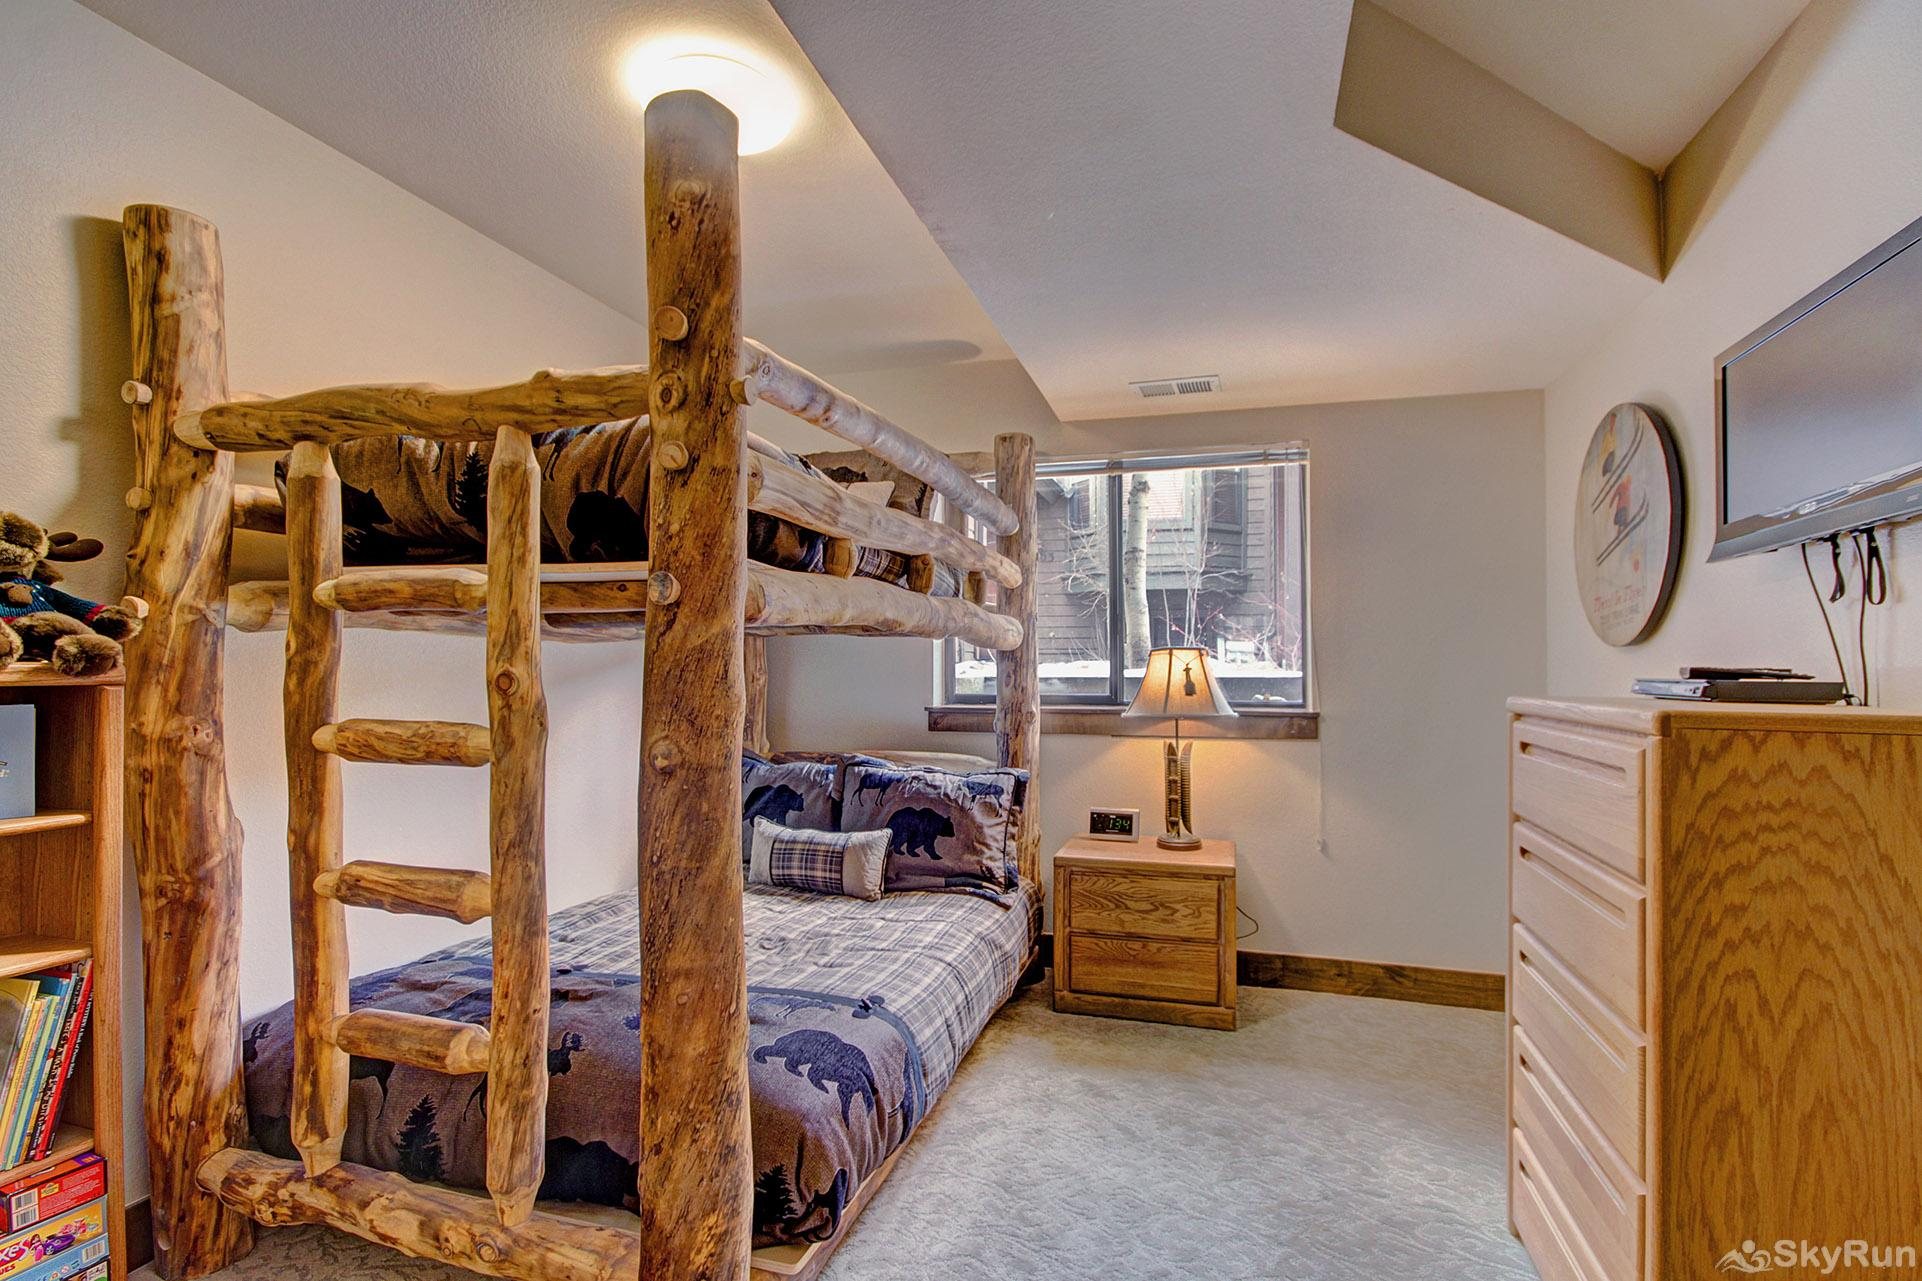 Village Point 109 Third bedroom features a twin over queen sized bunk bed